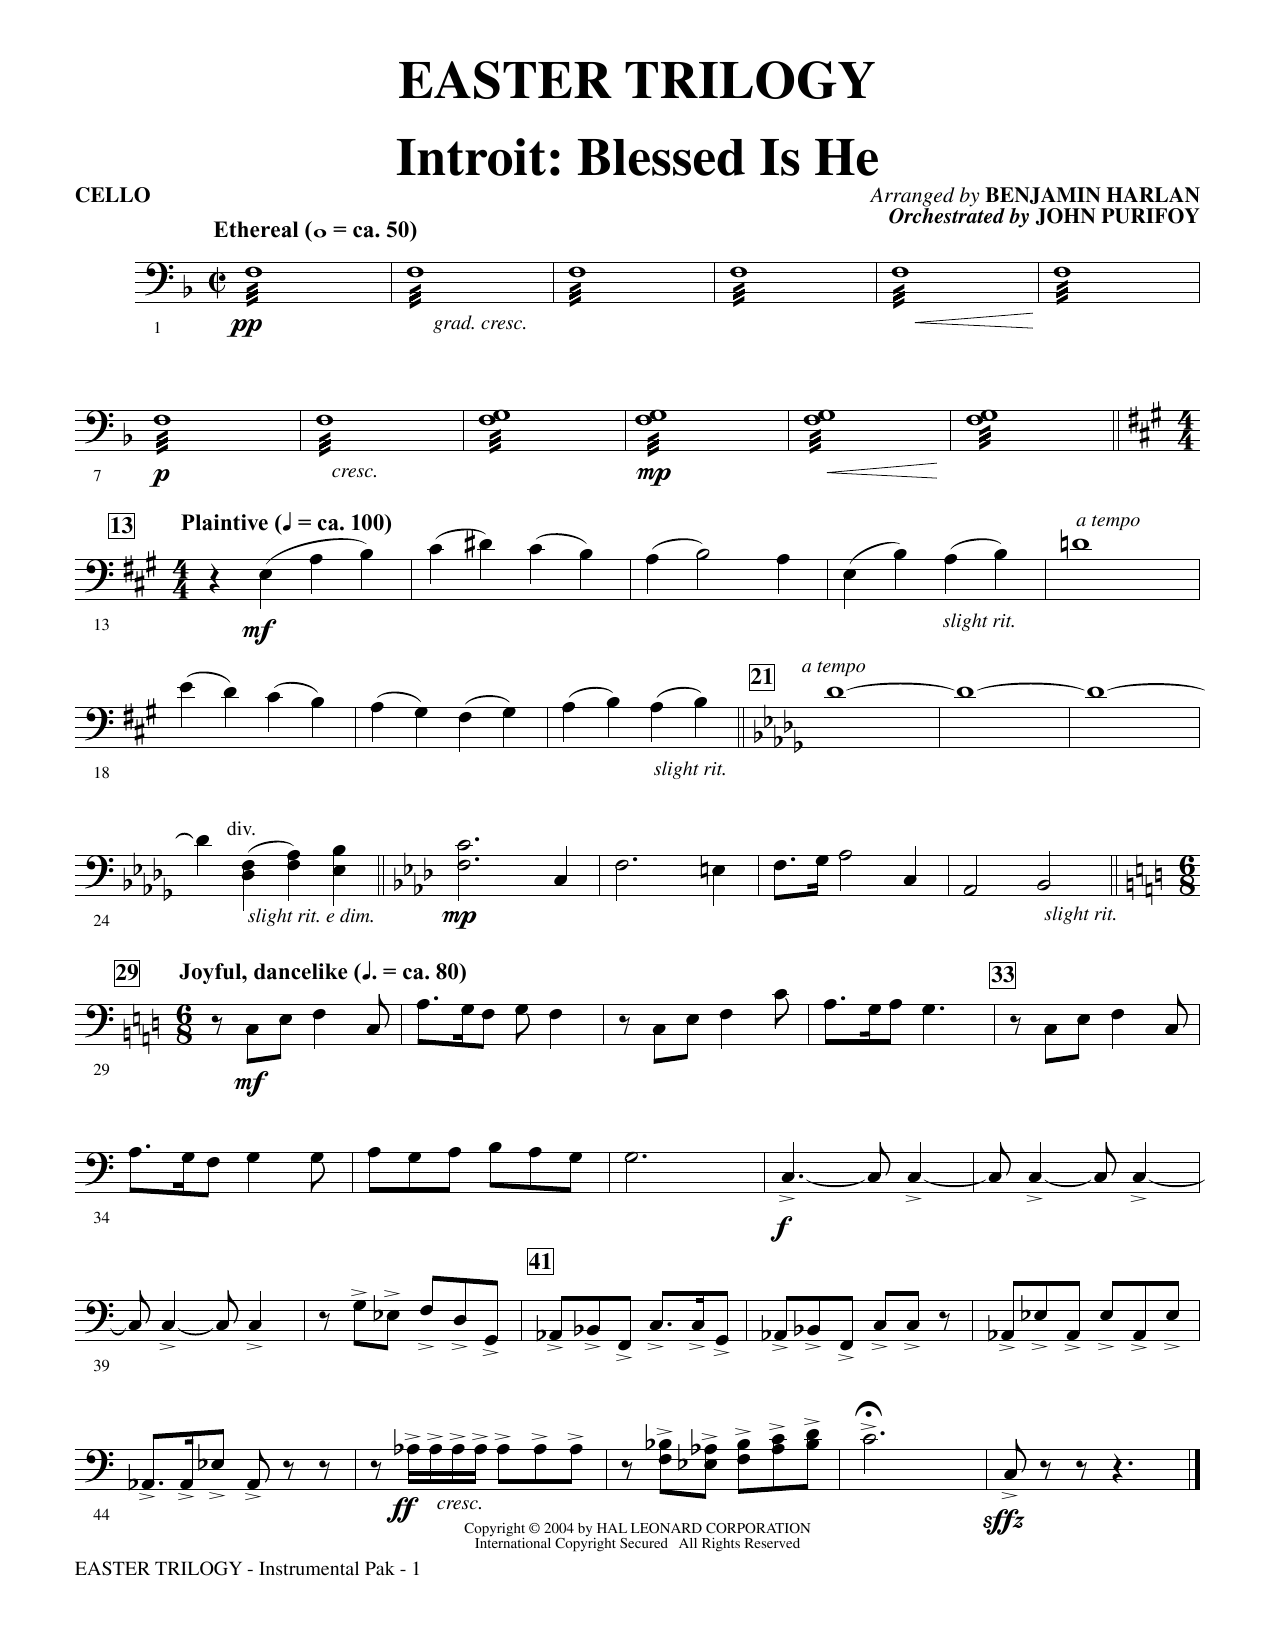 Easter Trilogy: A Cantata in Three Suites (Chamber Orchestra) - Cello Sheet Music